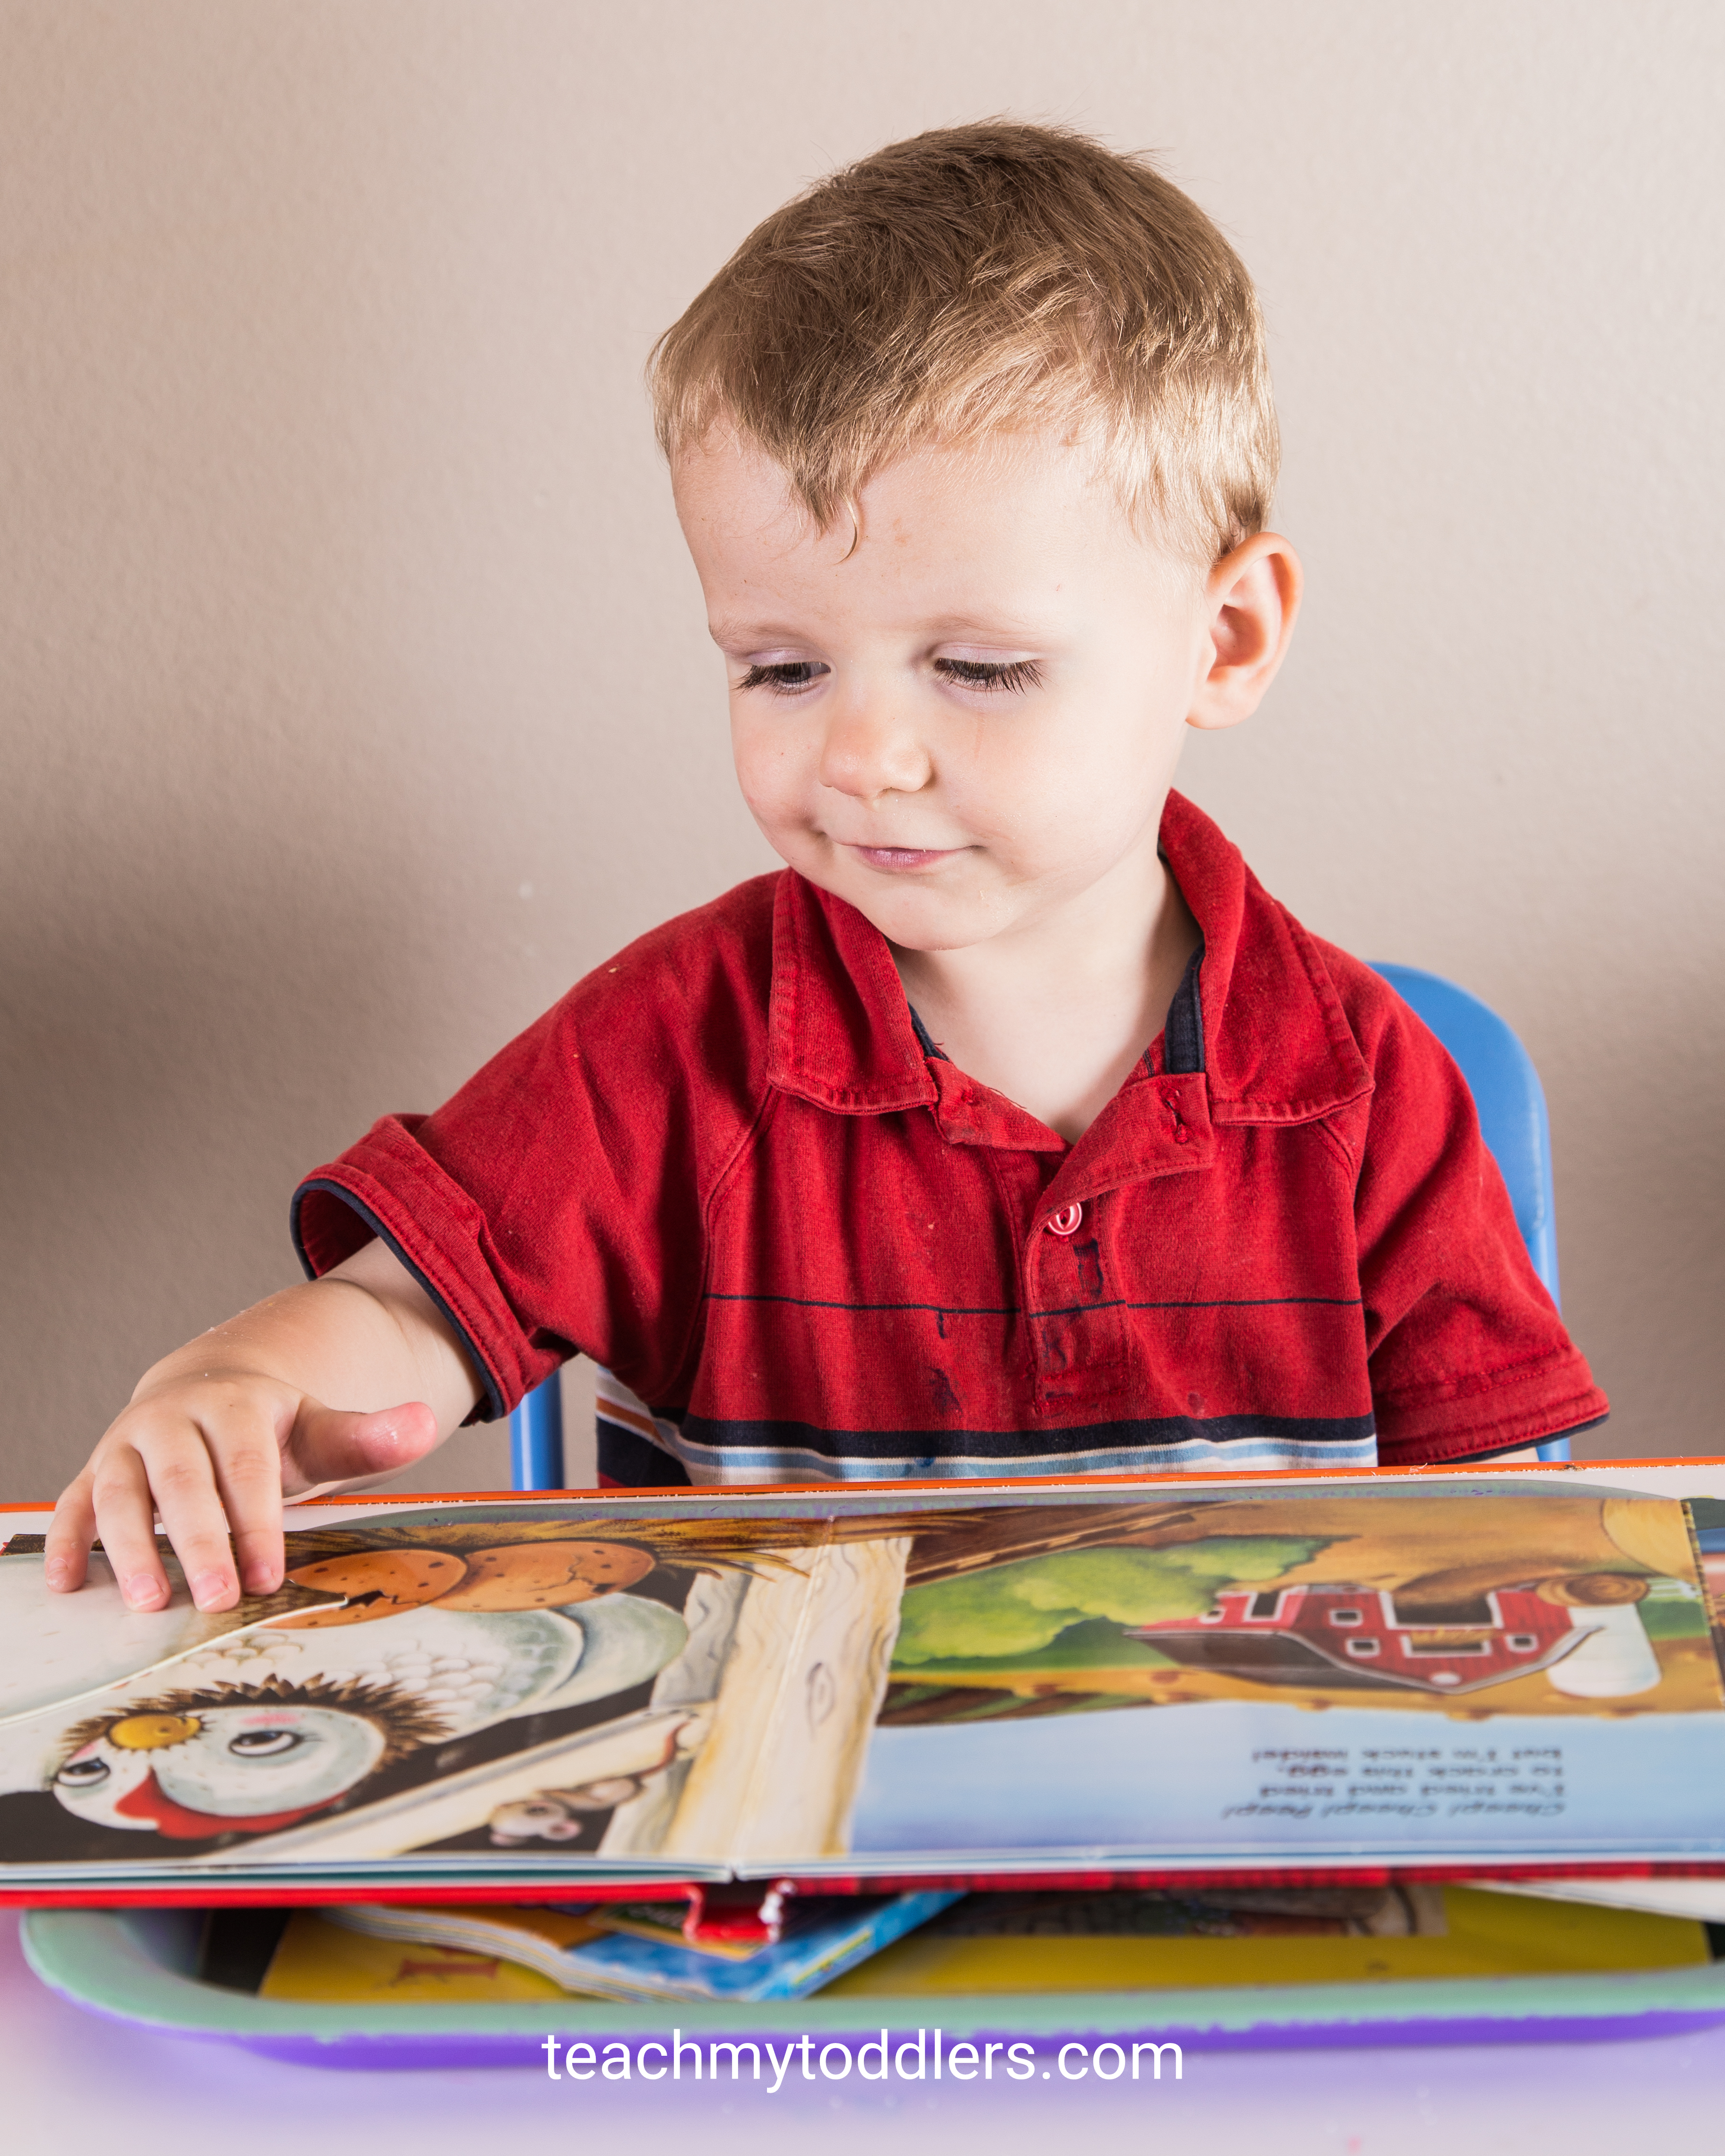 Teach your toddlers about the beach using these great beach activities